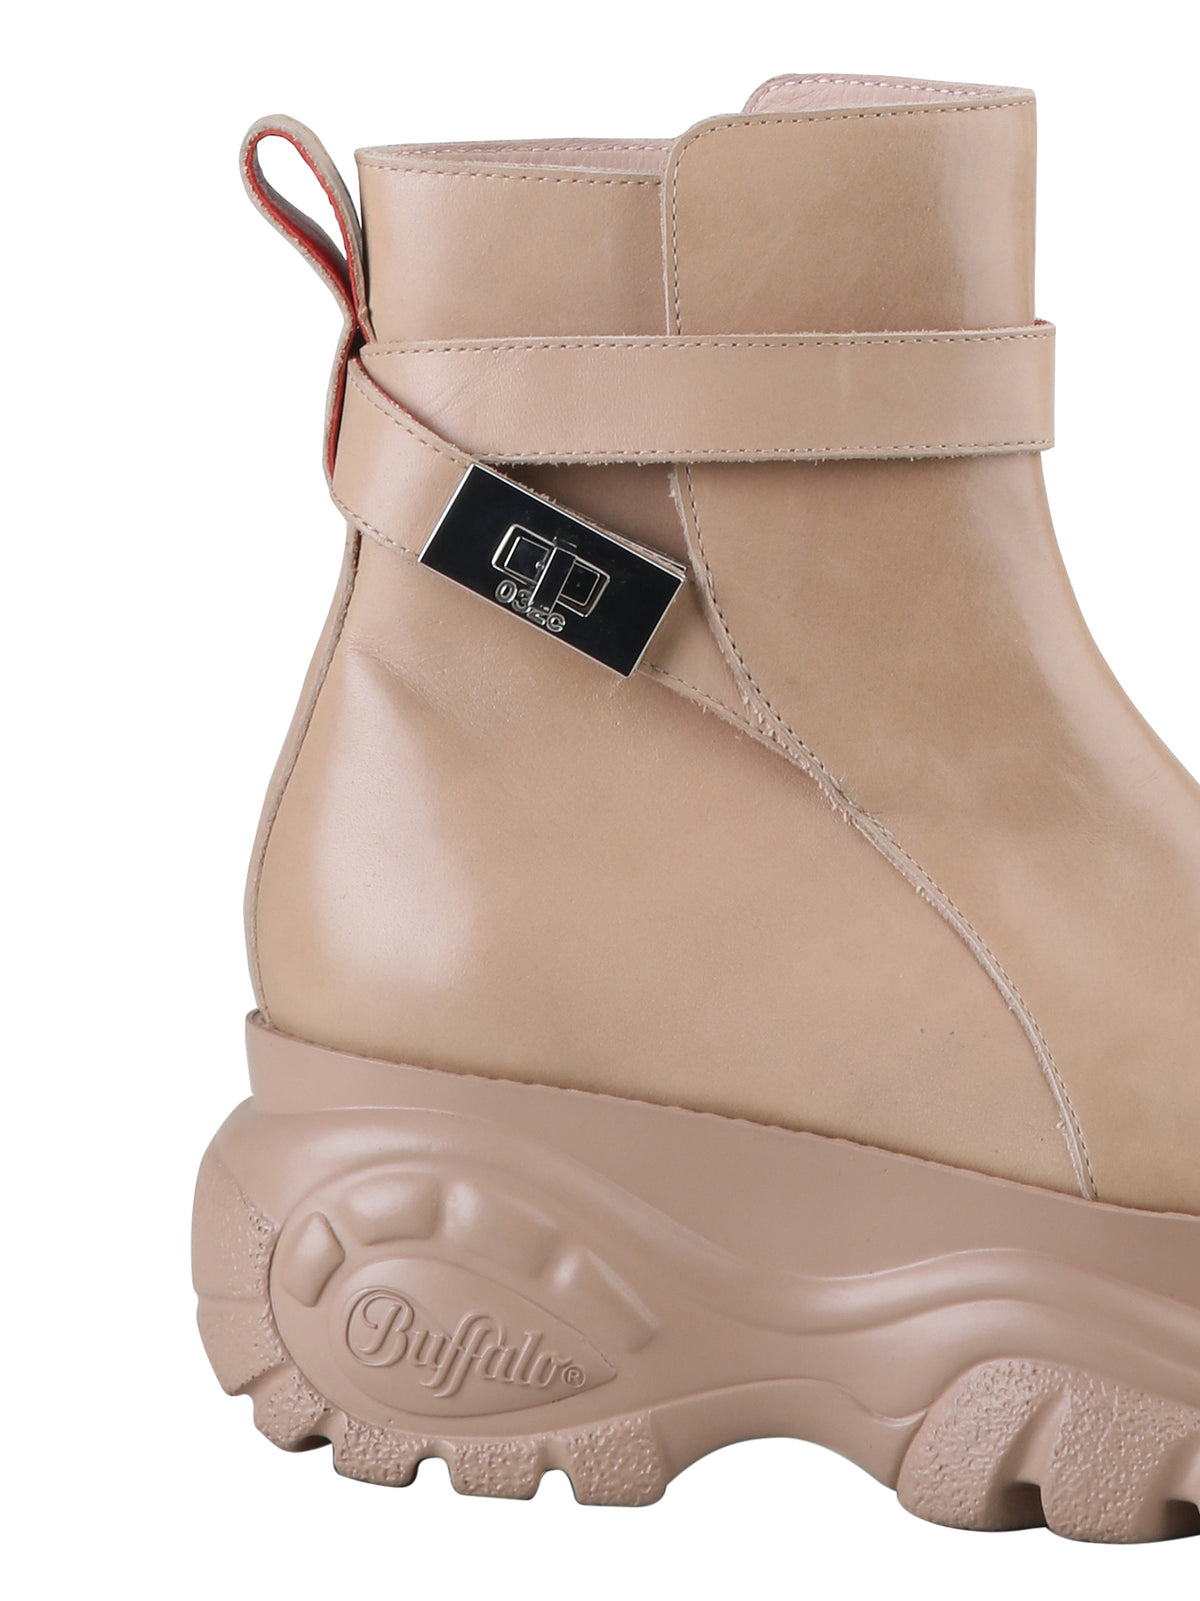 Buffalo by 032c Jodhpur Ankle Boot Nude - 032c